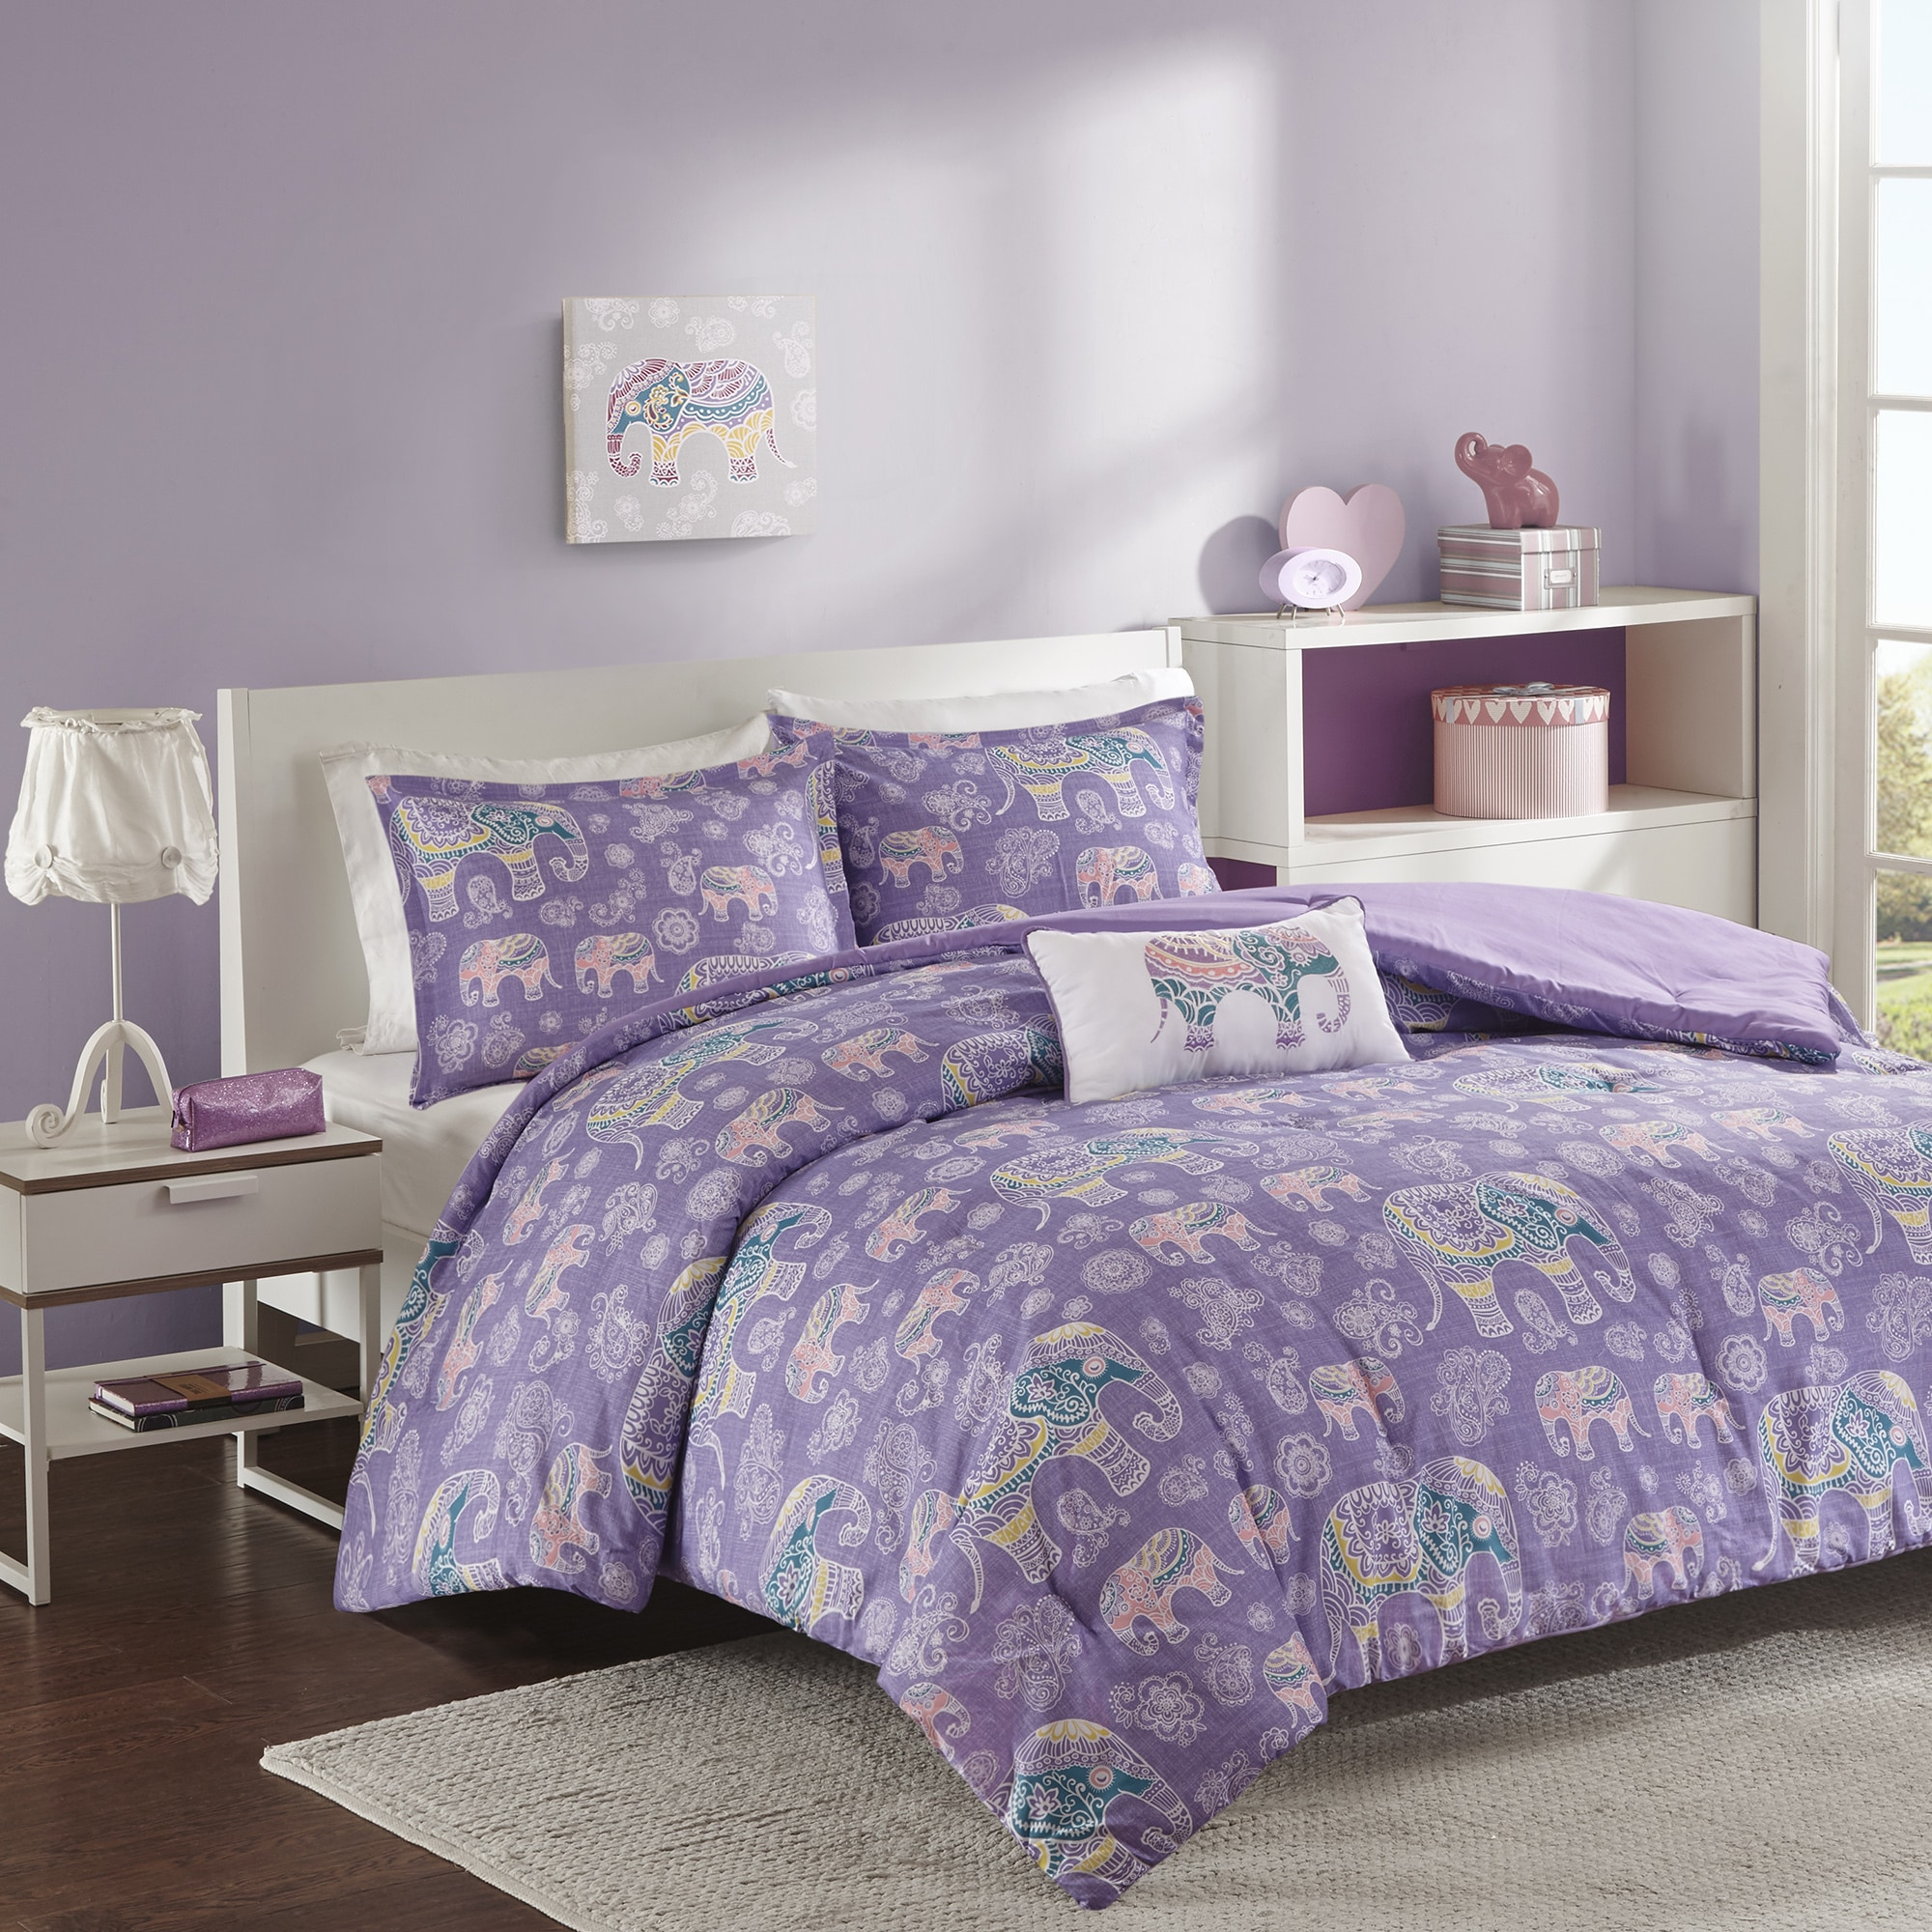 comforter lovely pinterest for of bedroom bedding grey purple color pink set and pin sets